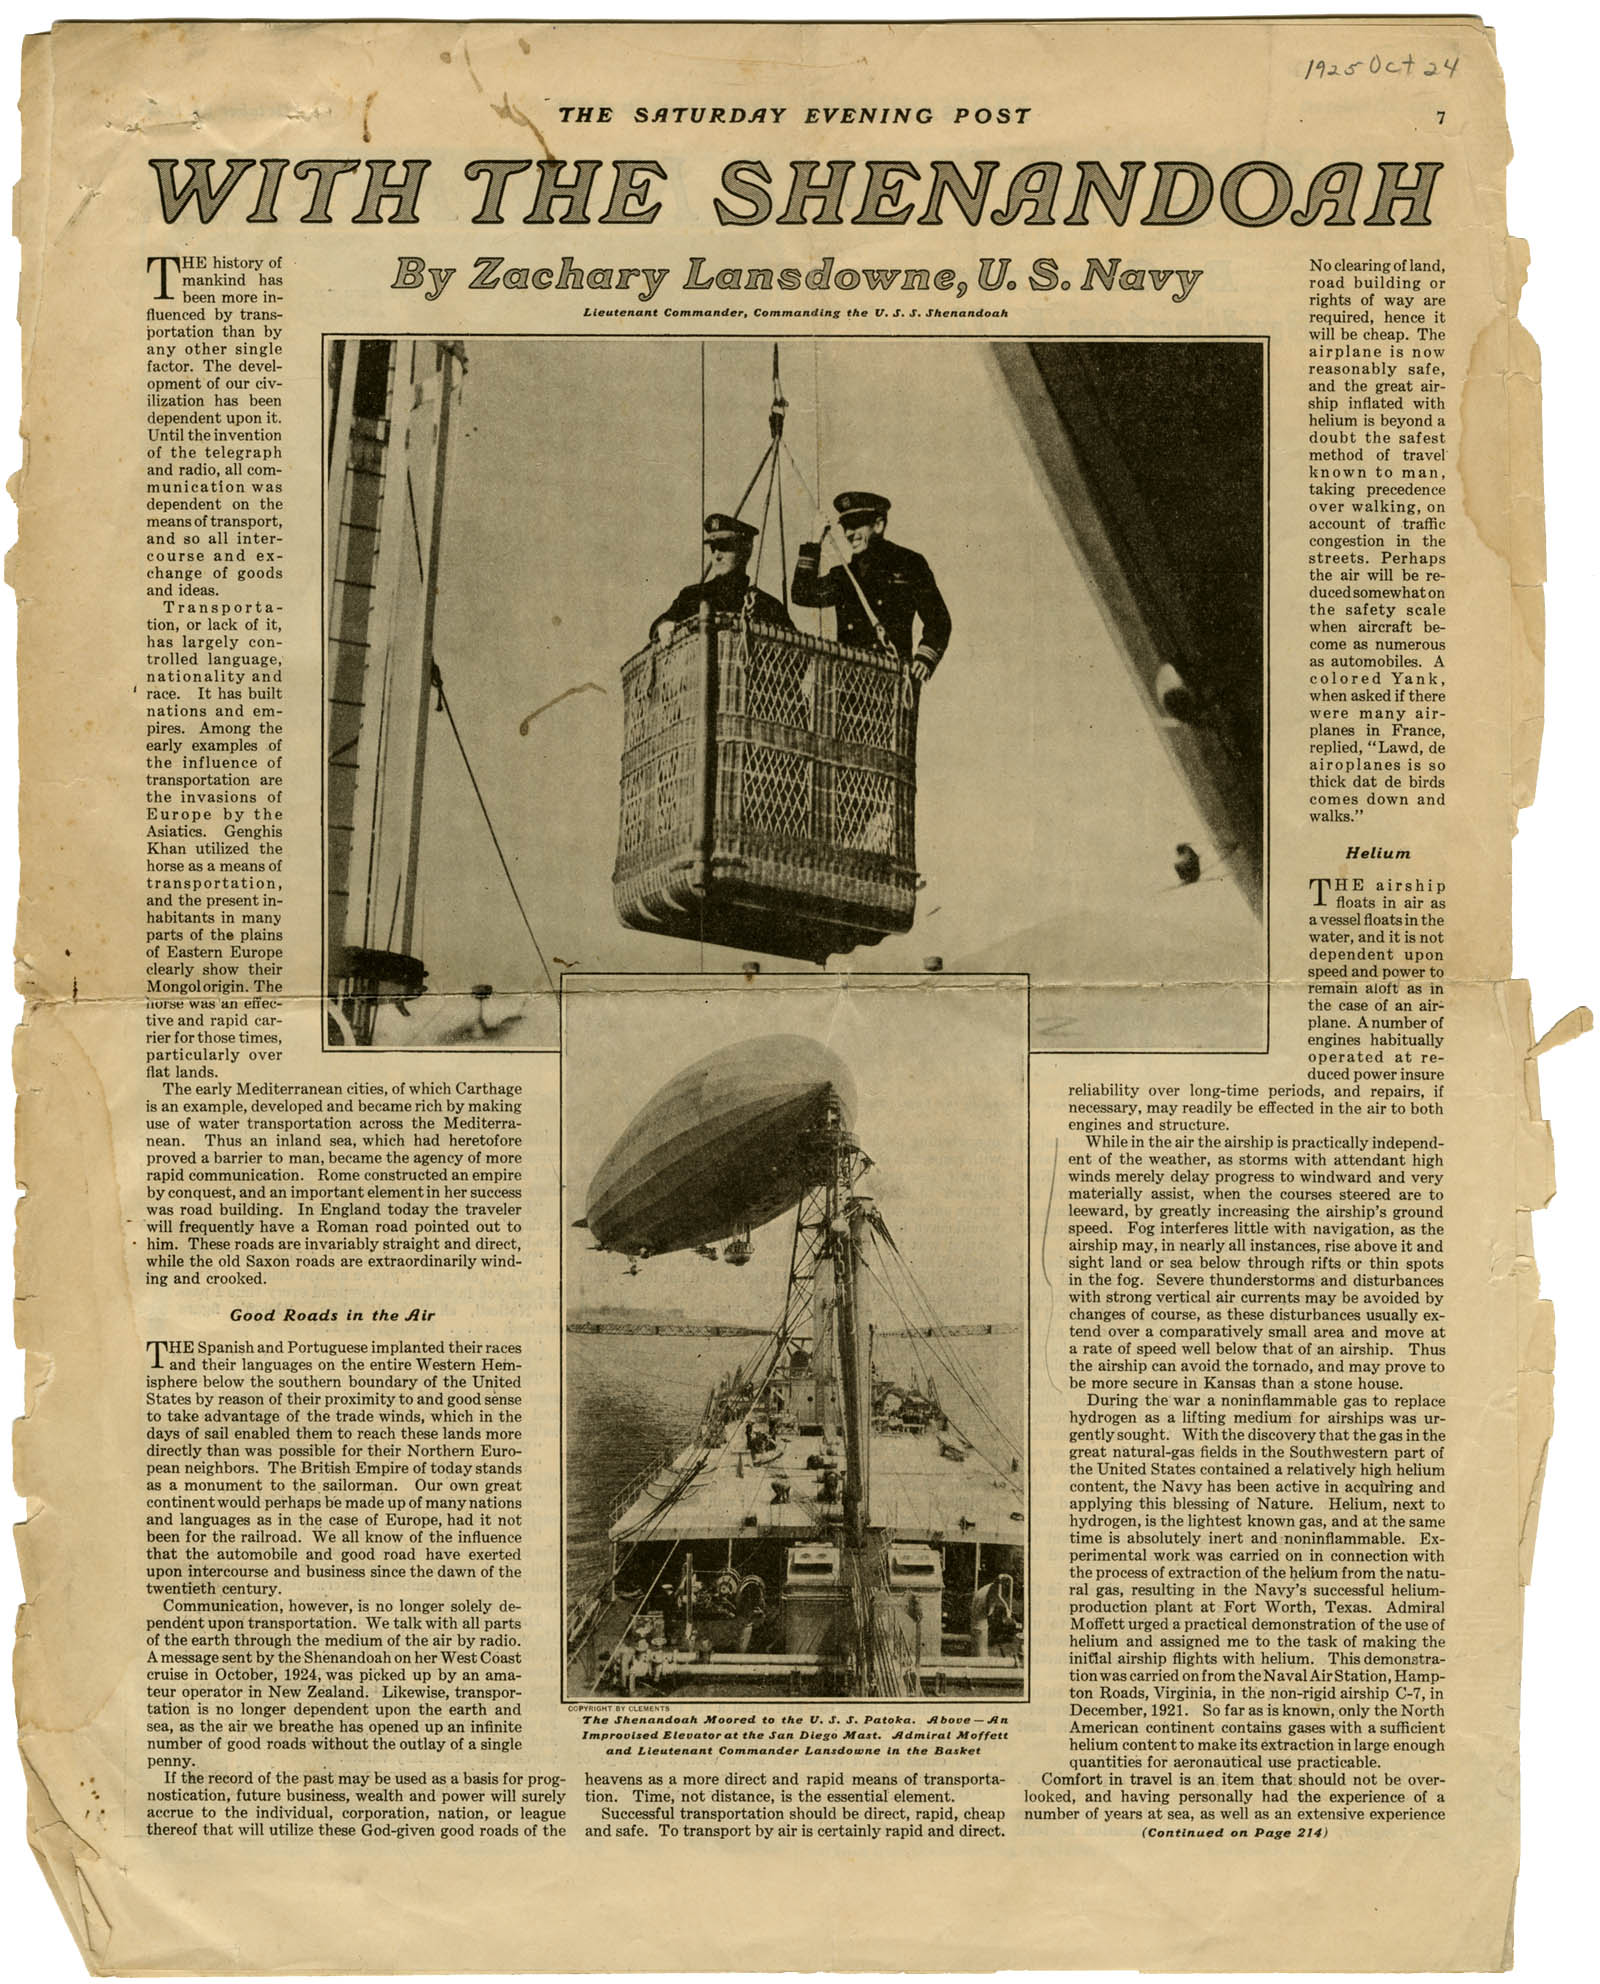 Saturday Evening Post article about the Shenandoah